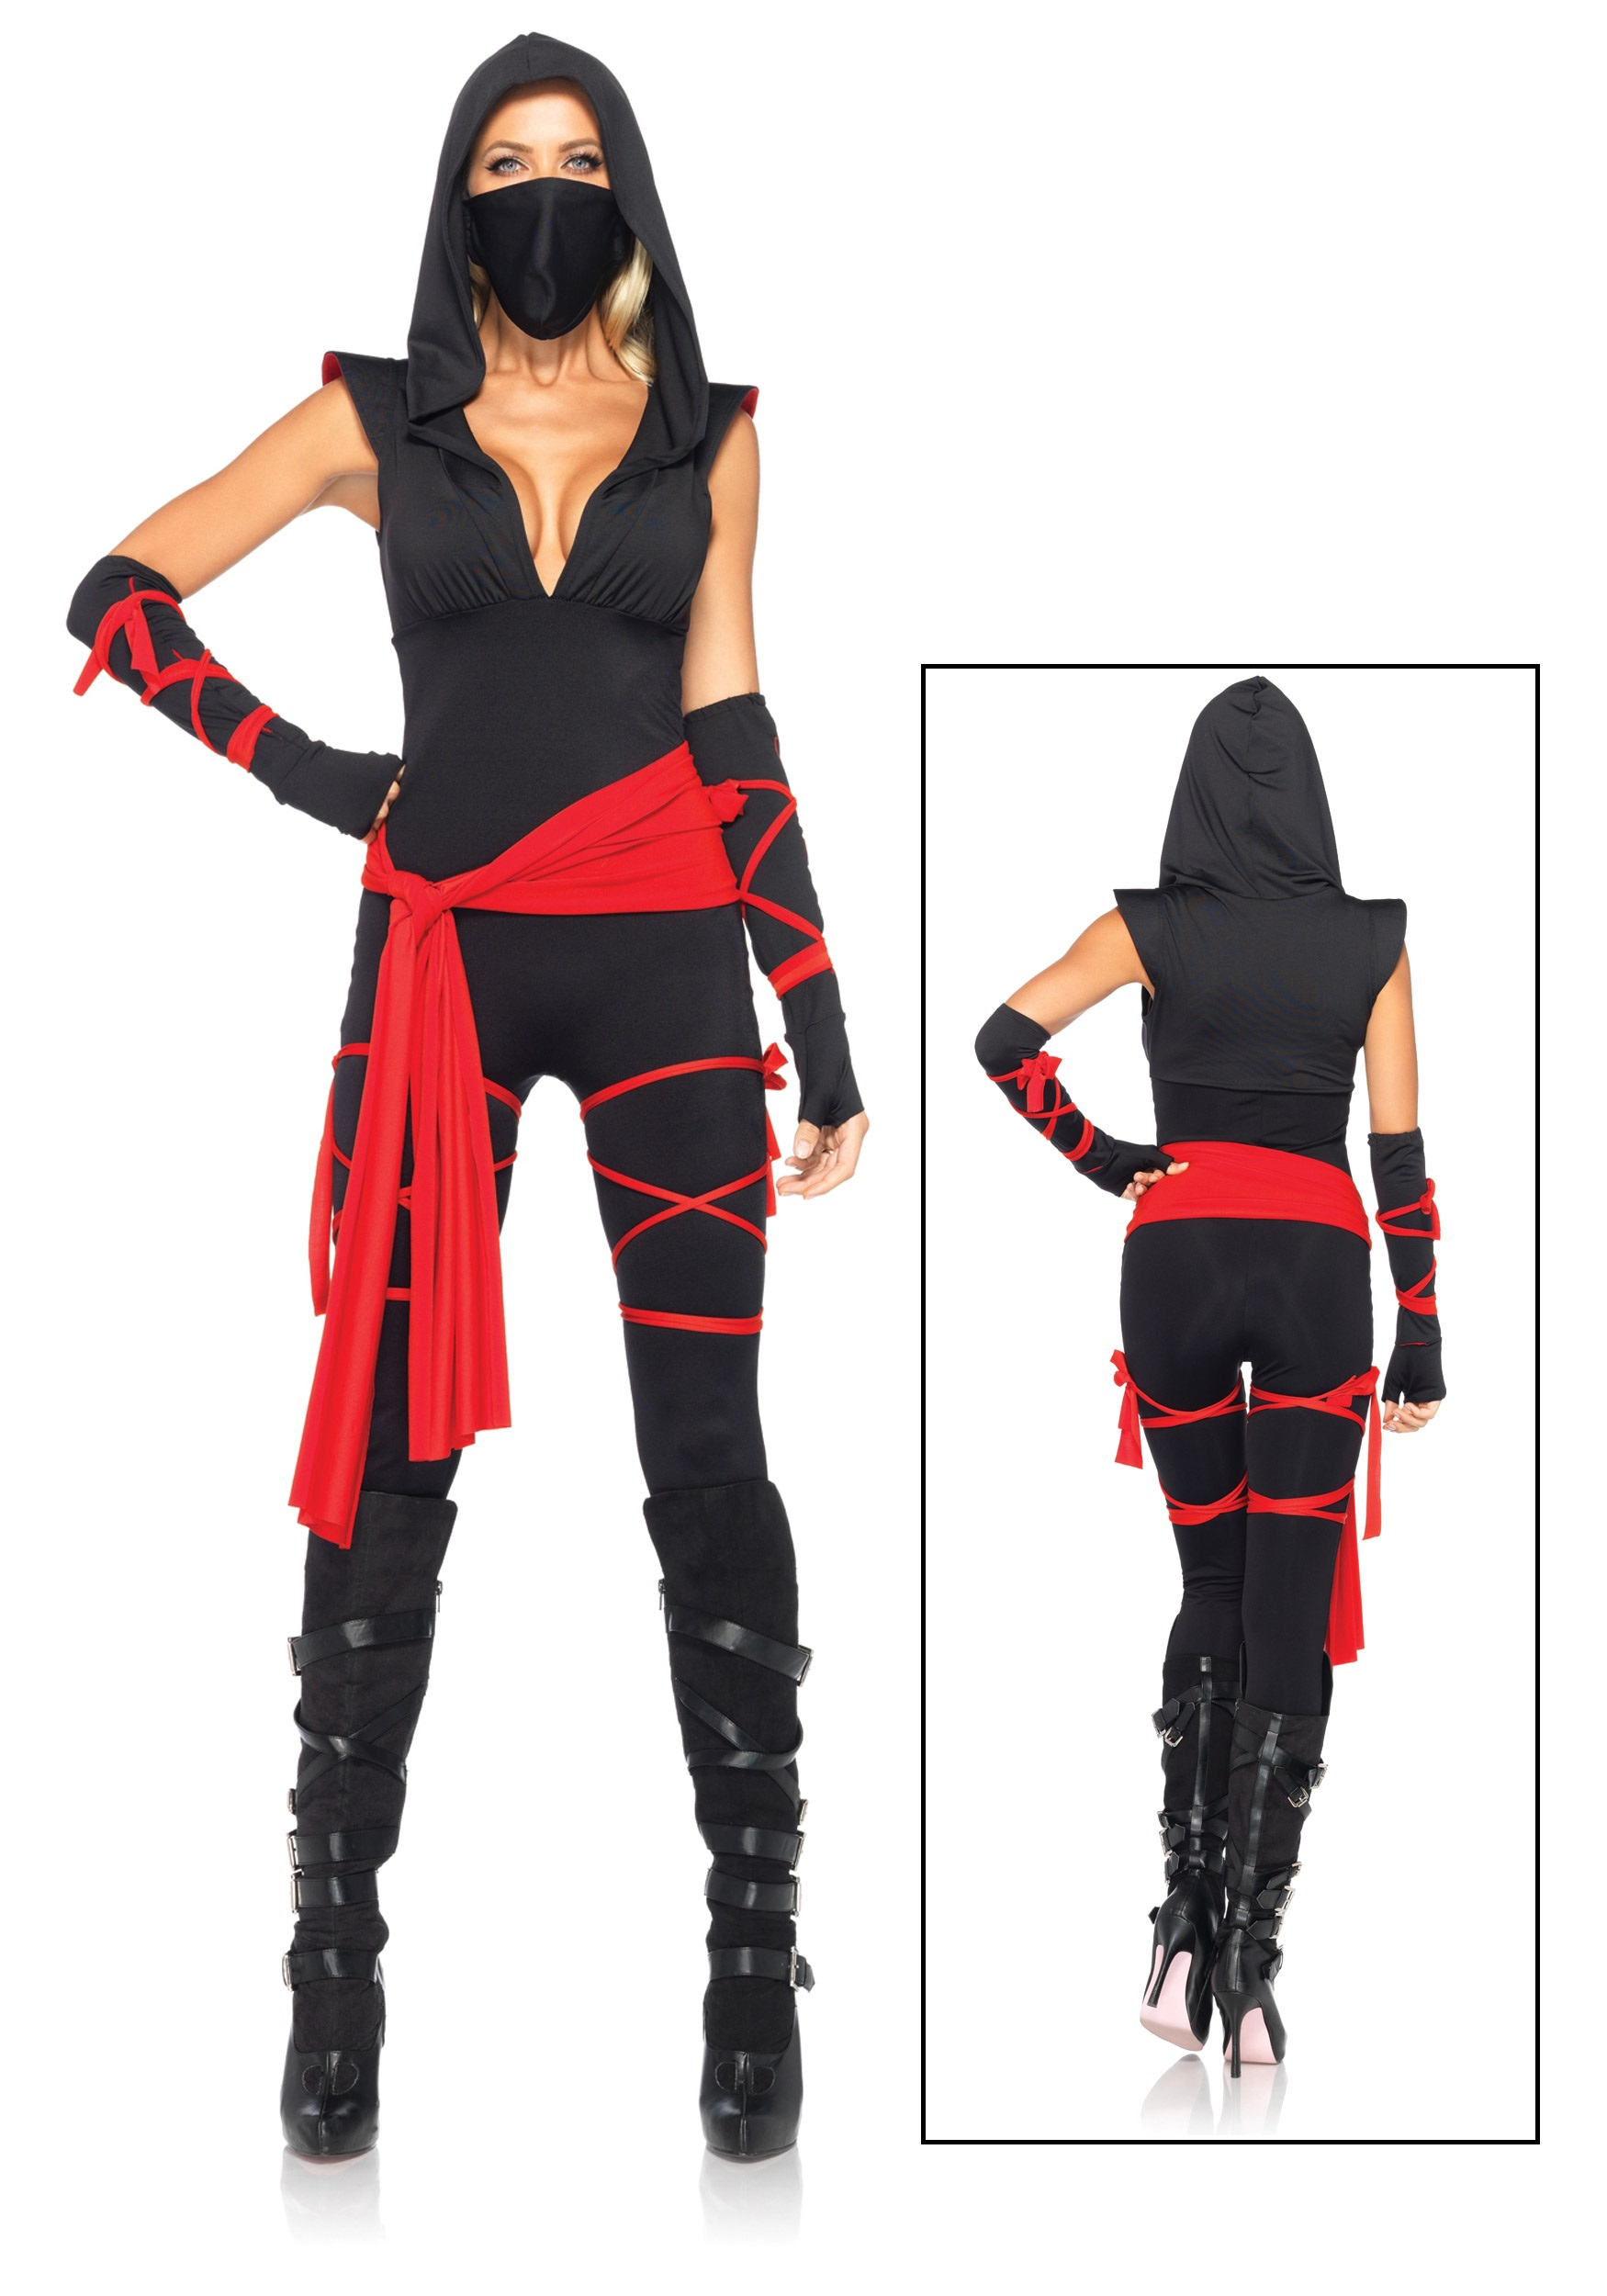 Sexy Deadly Ninja Costume